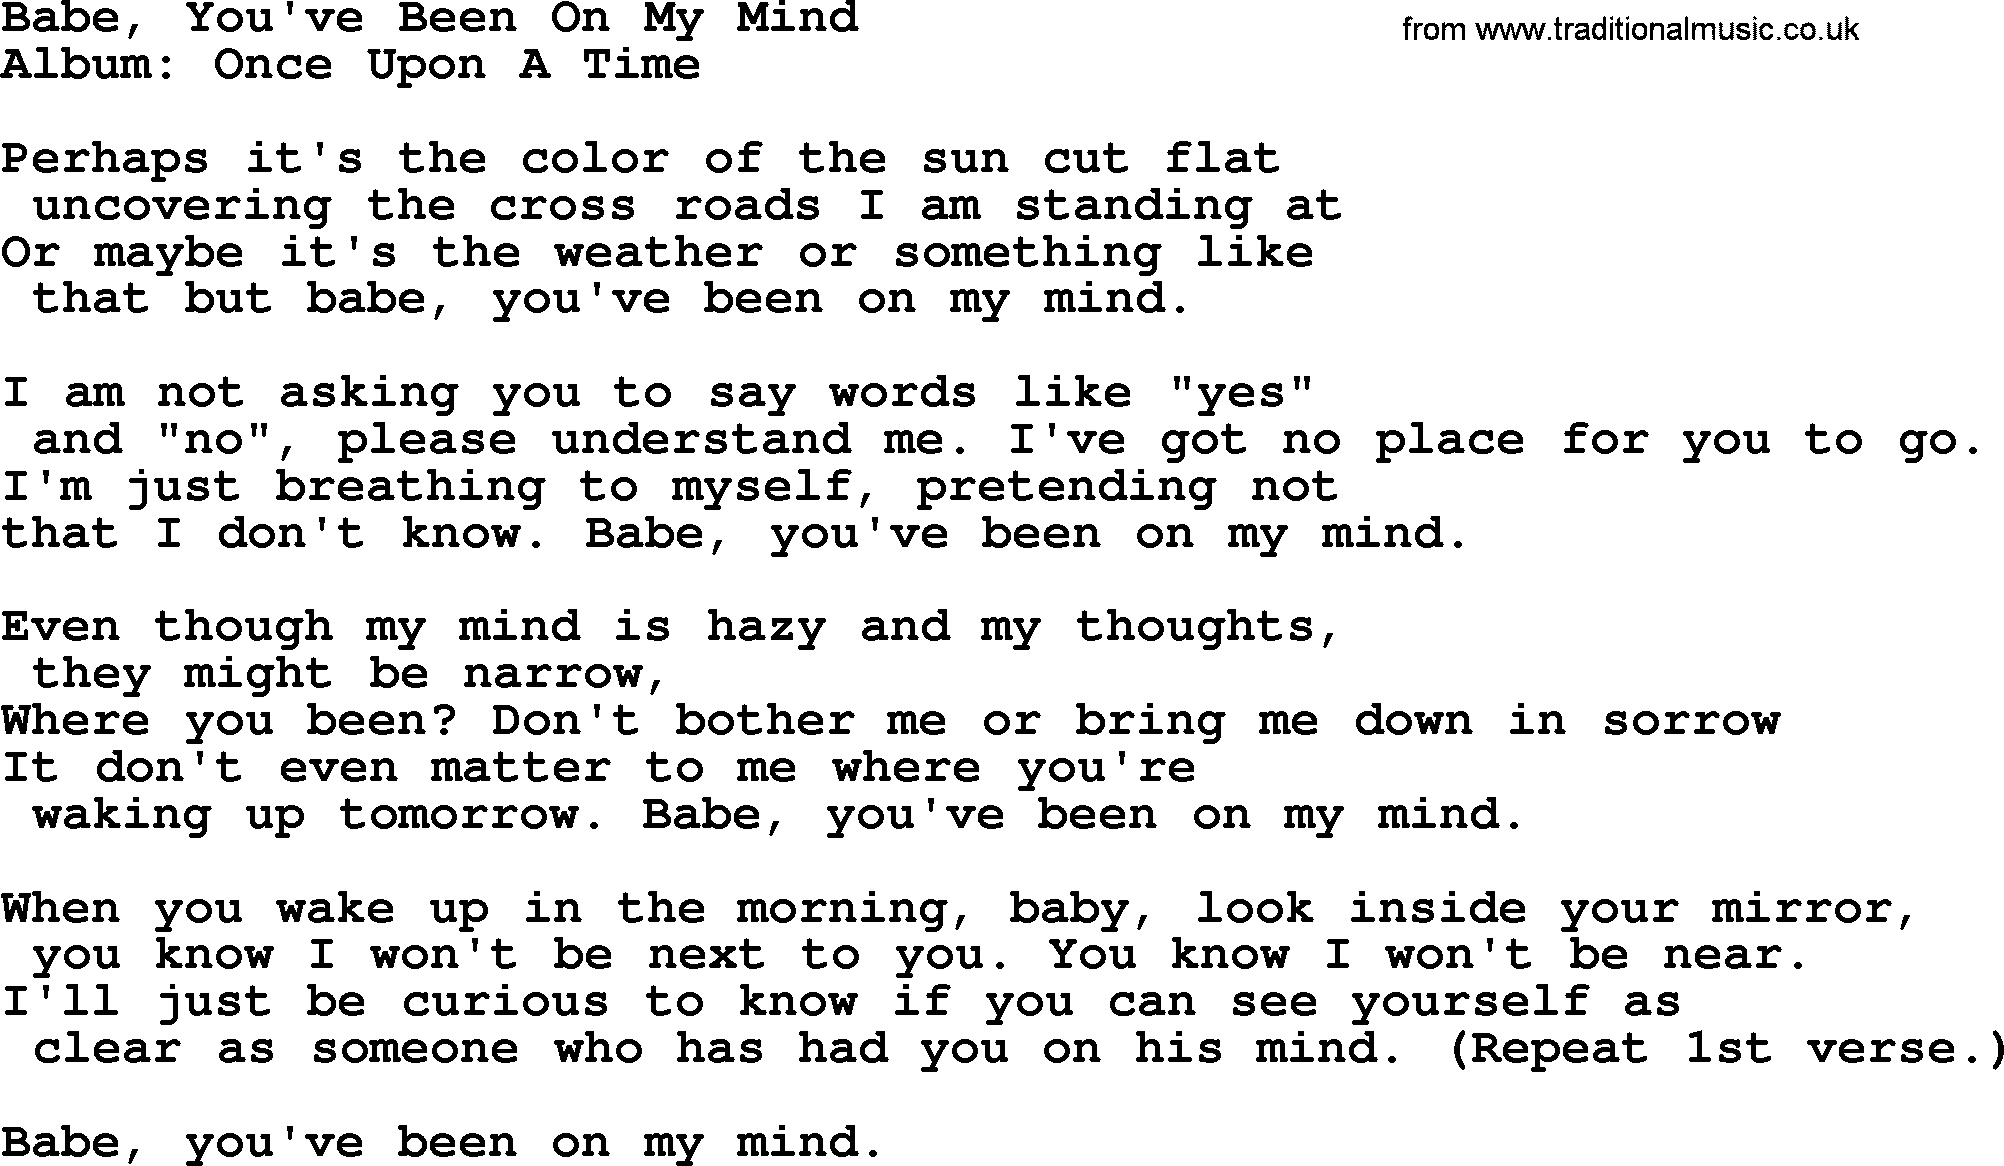 Kingston Trio Song Babe Youve Been On My Mind Lyrics